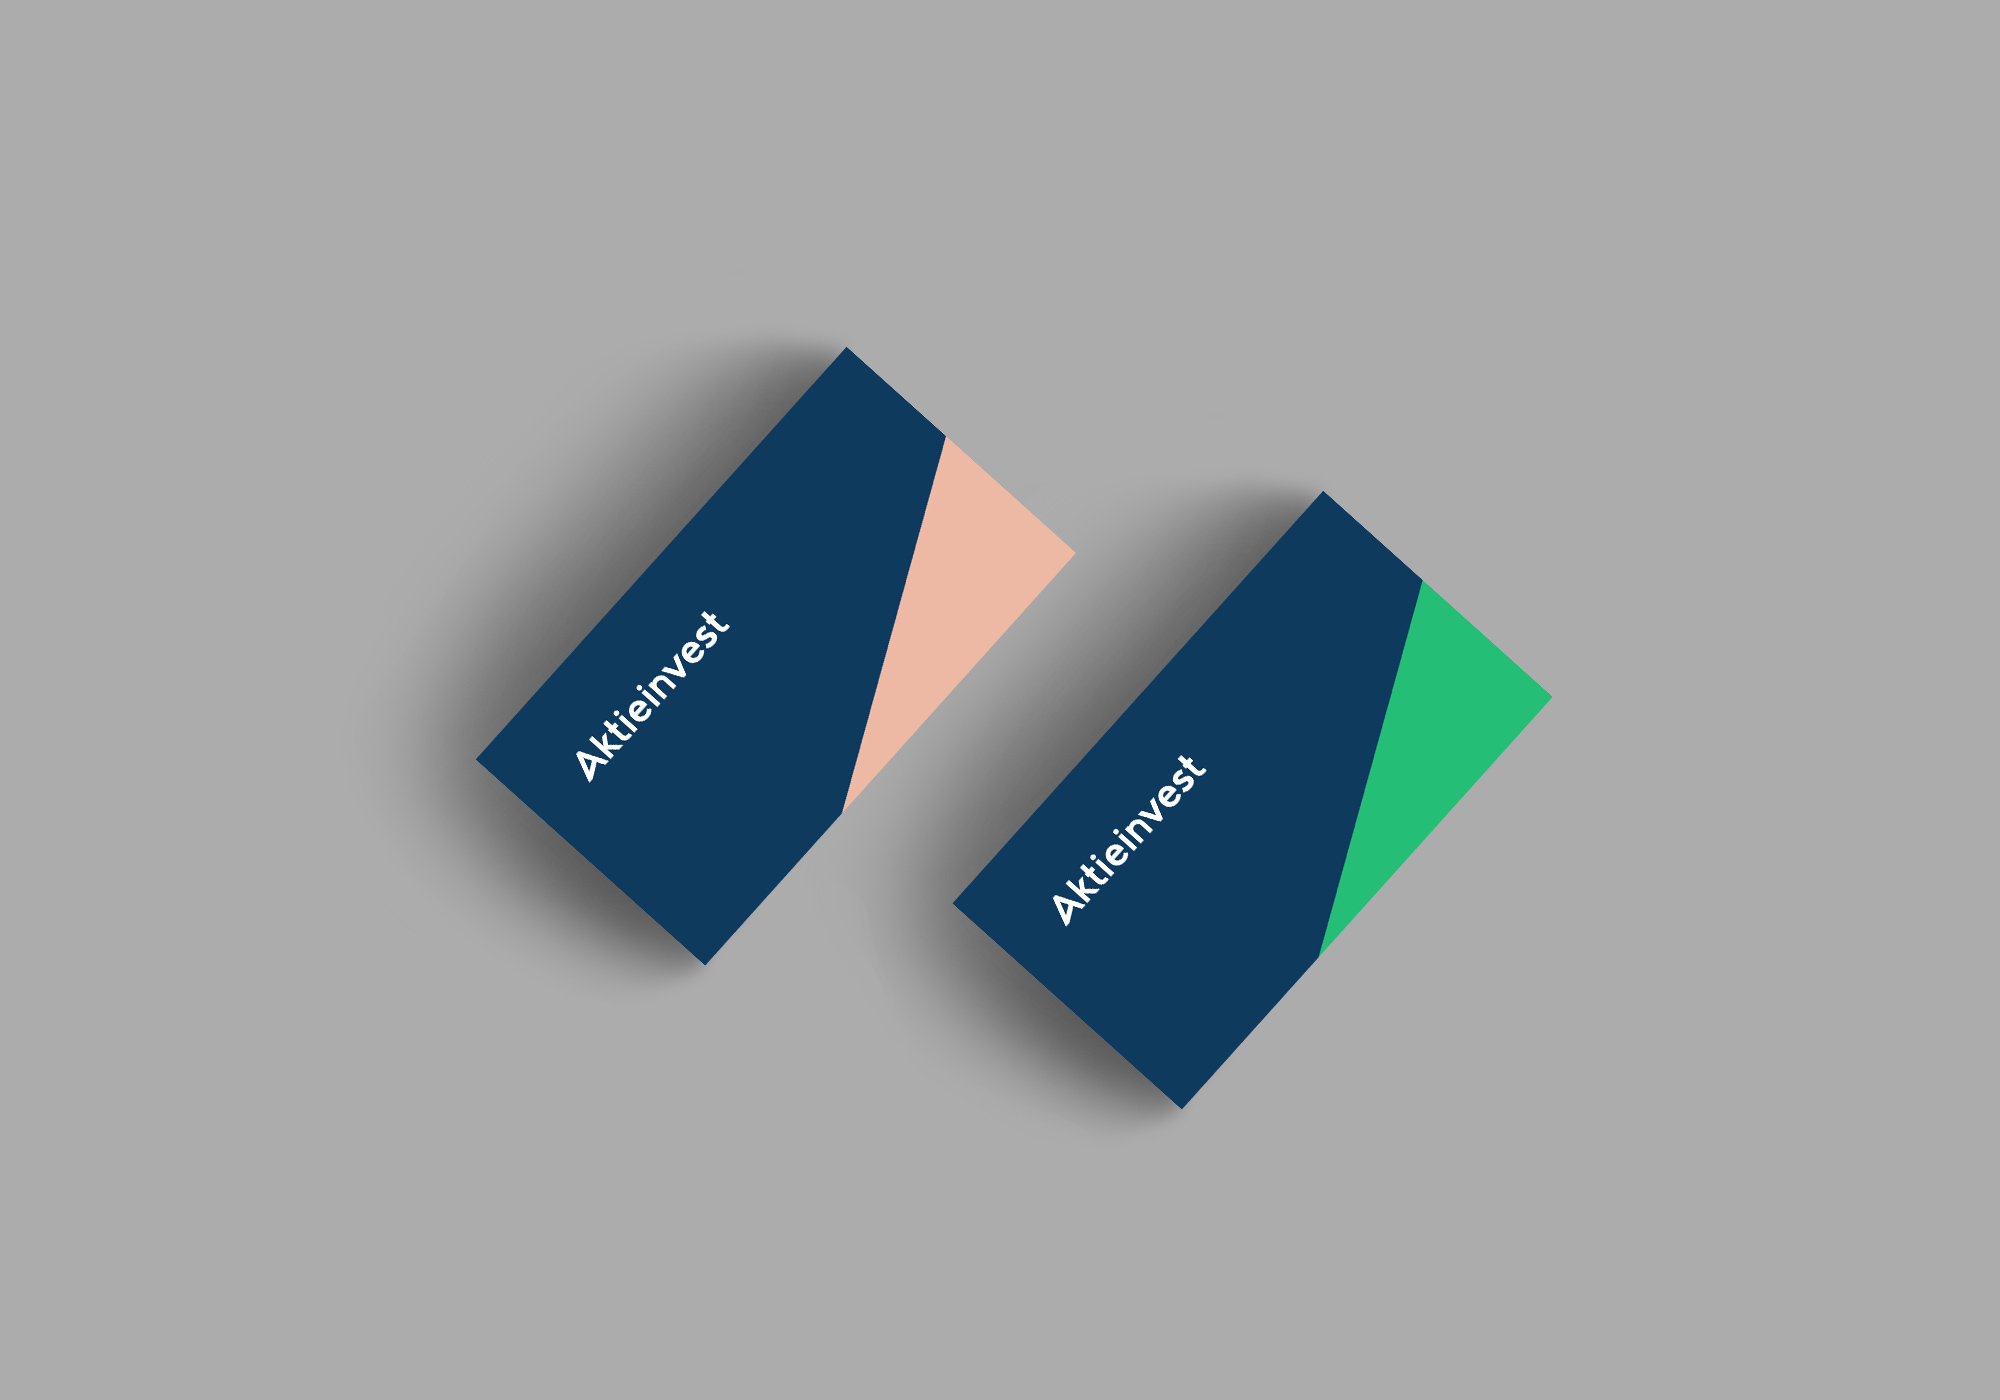 helene-chataigner-aktie-identity-graphics-business-cards-big